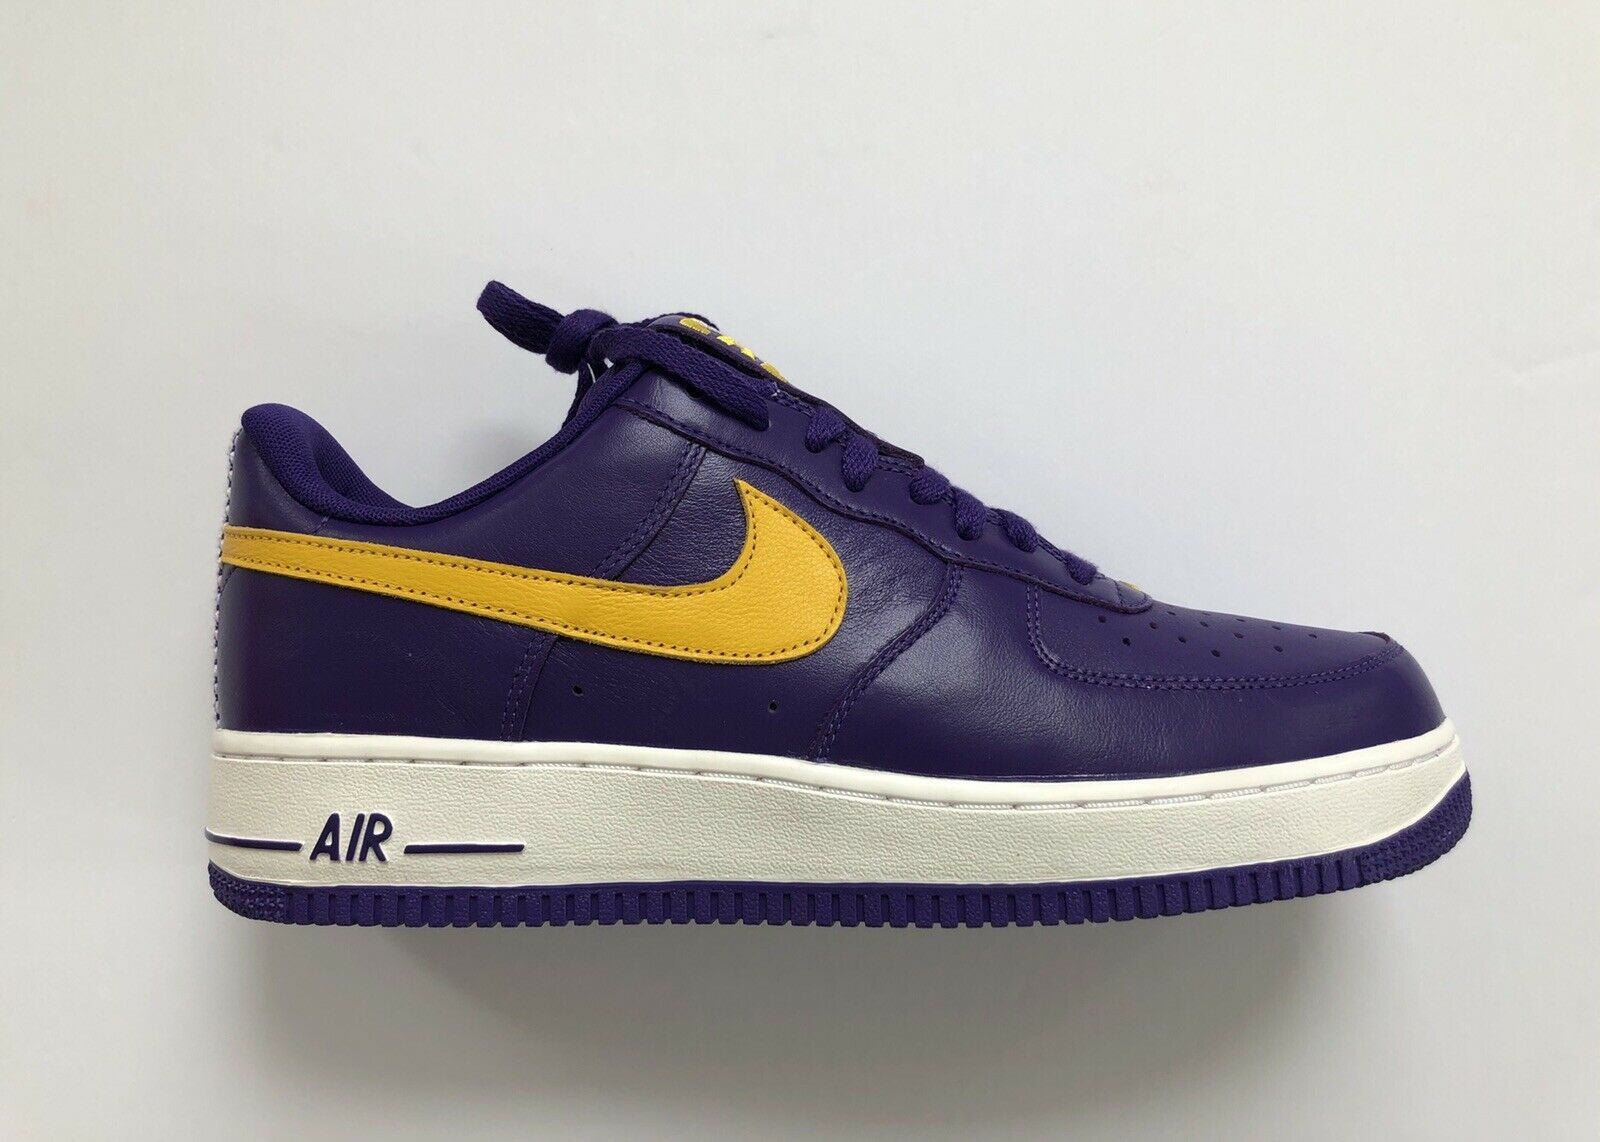 Nike iD Los Angeles Lakers Air Force 1 AF1 Low NBA Pack AQ3998-993 Size 11